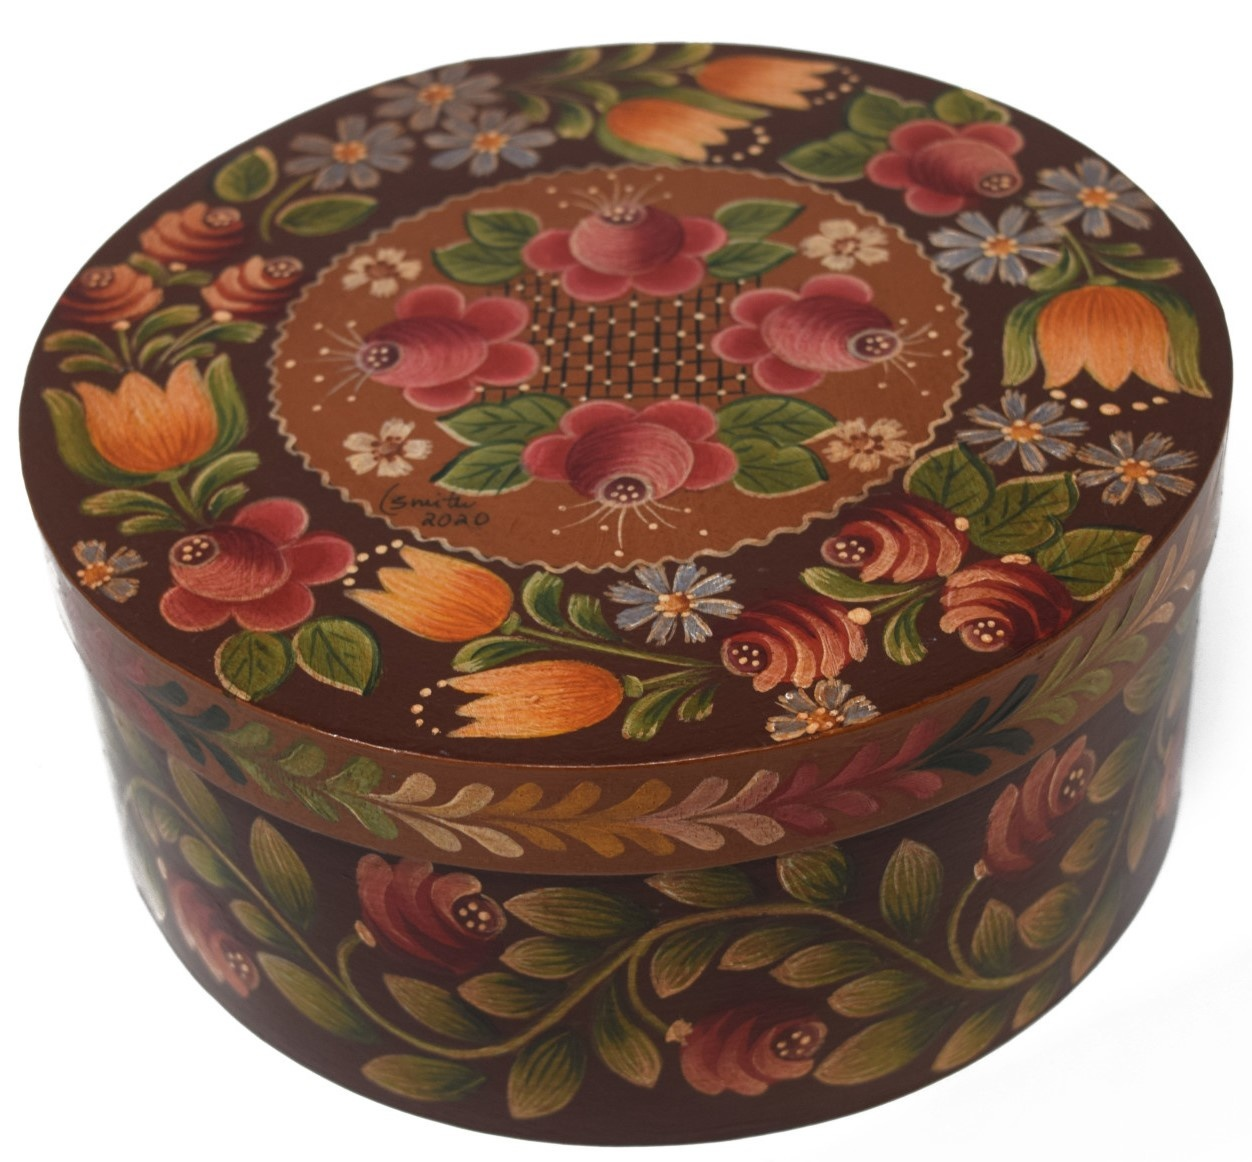 Round box brown with light brown center and flowers-2